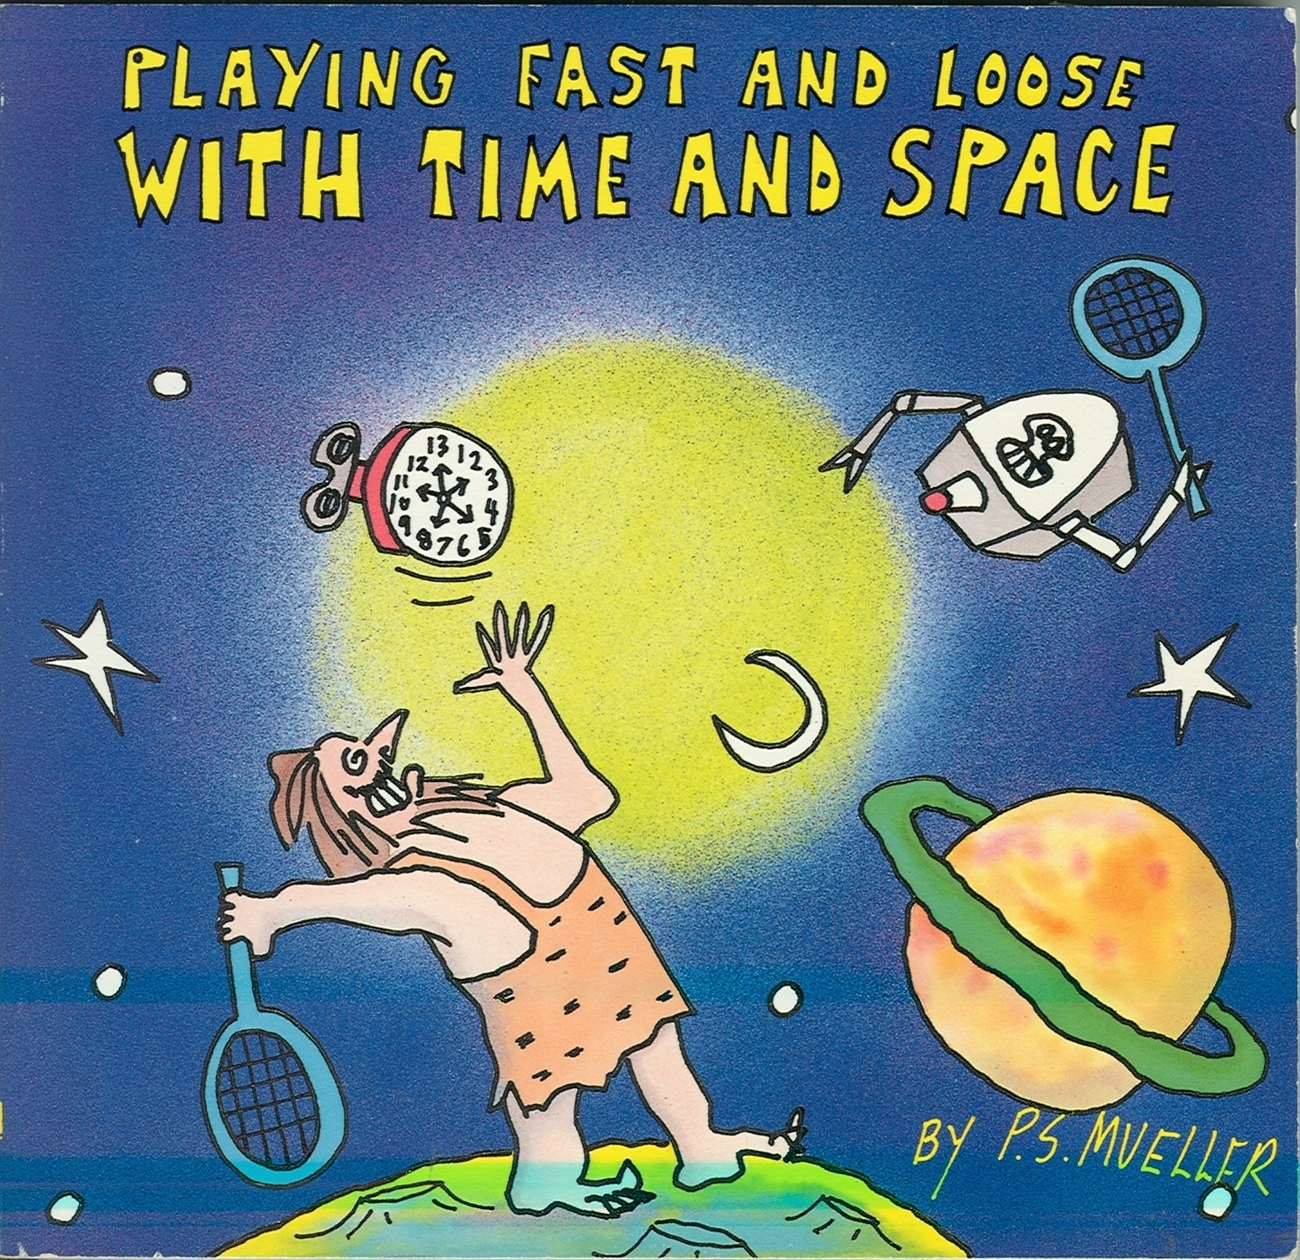 Playing fast and loose with time and space